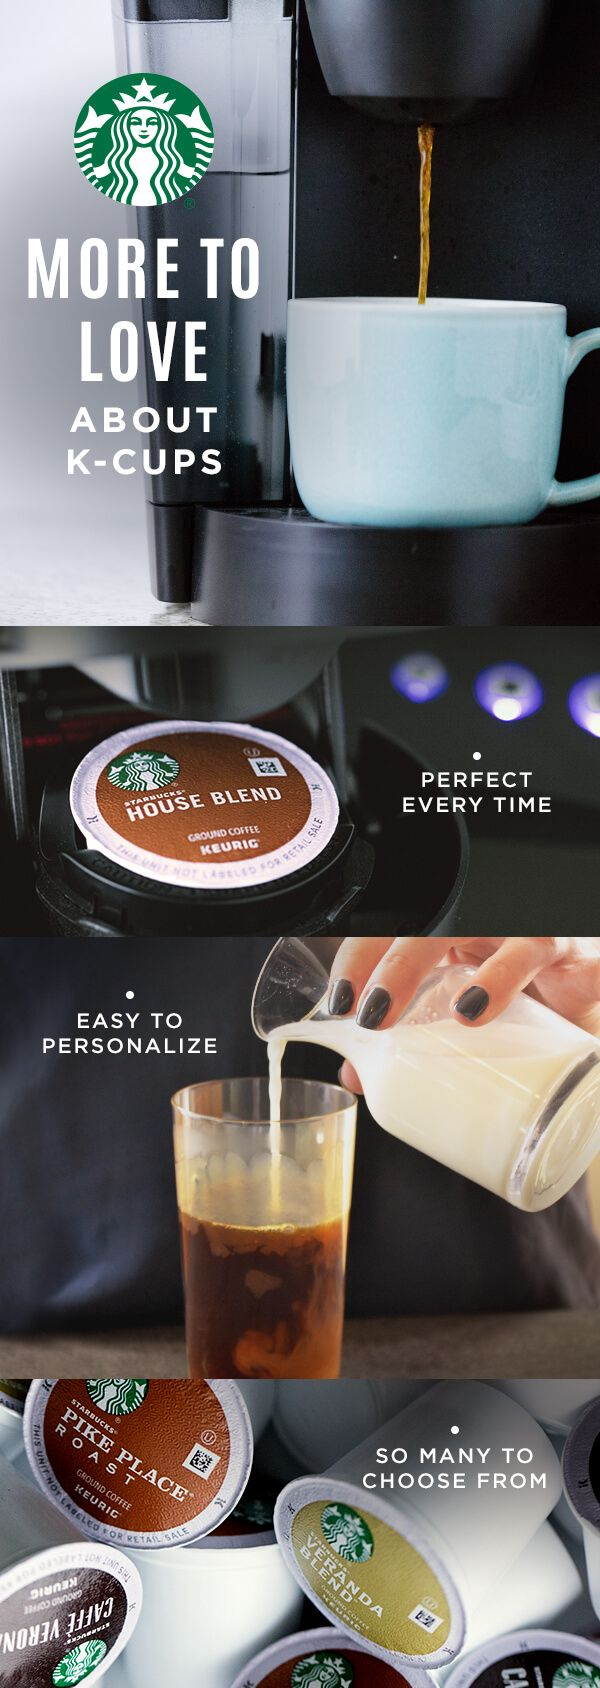 From variety to personalization there's so much to love in every easy-to-make K-Cup. Find the cup to suit your mood. Maybe something lighter and brighter in the morning with a rich, robust roast for the afternoon and something decadent and decaf for dessert. The options are endless.